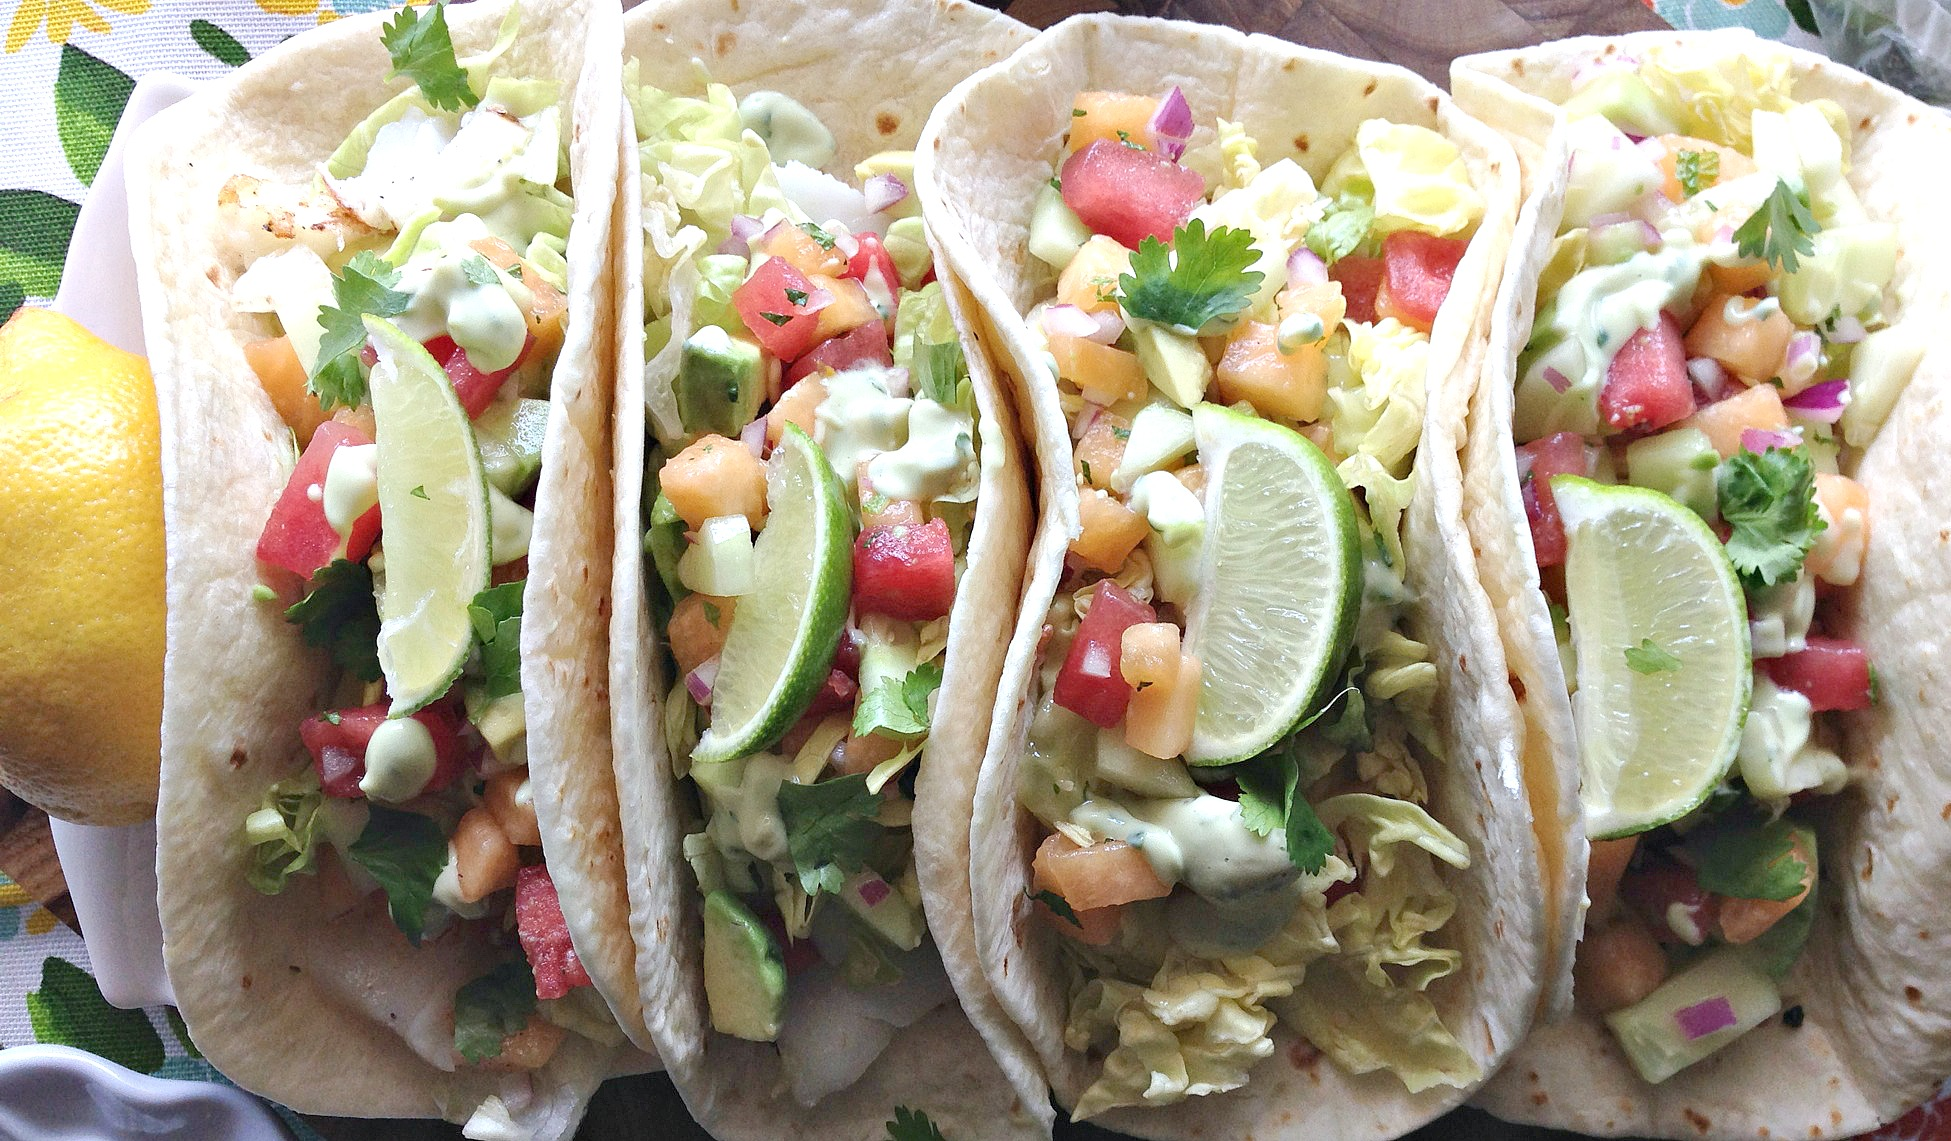 Fish Tacos with Melon Mint Salsa and Avocado Crema